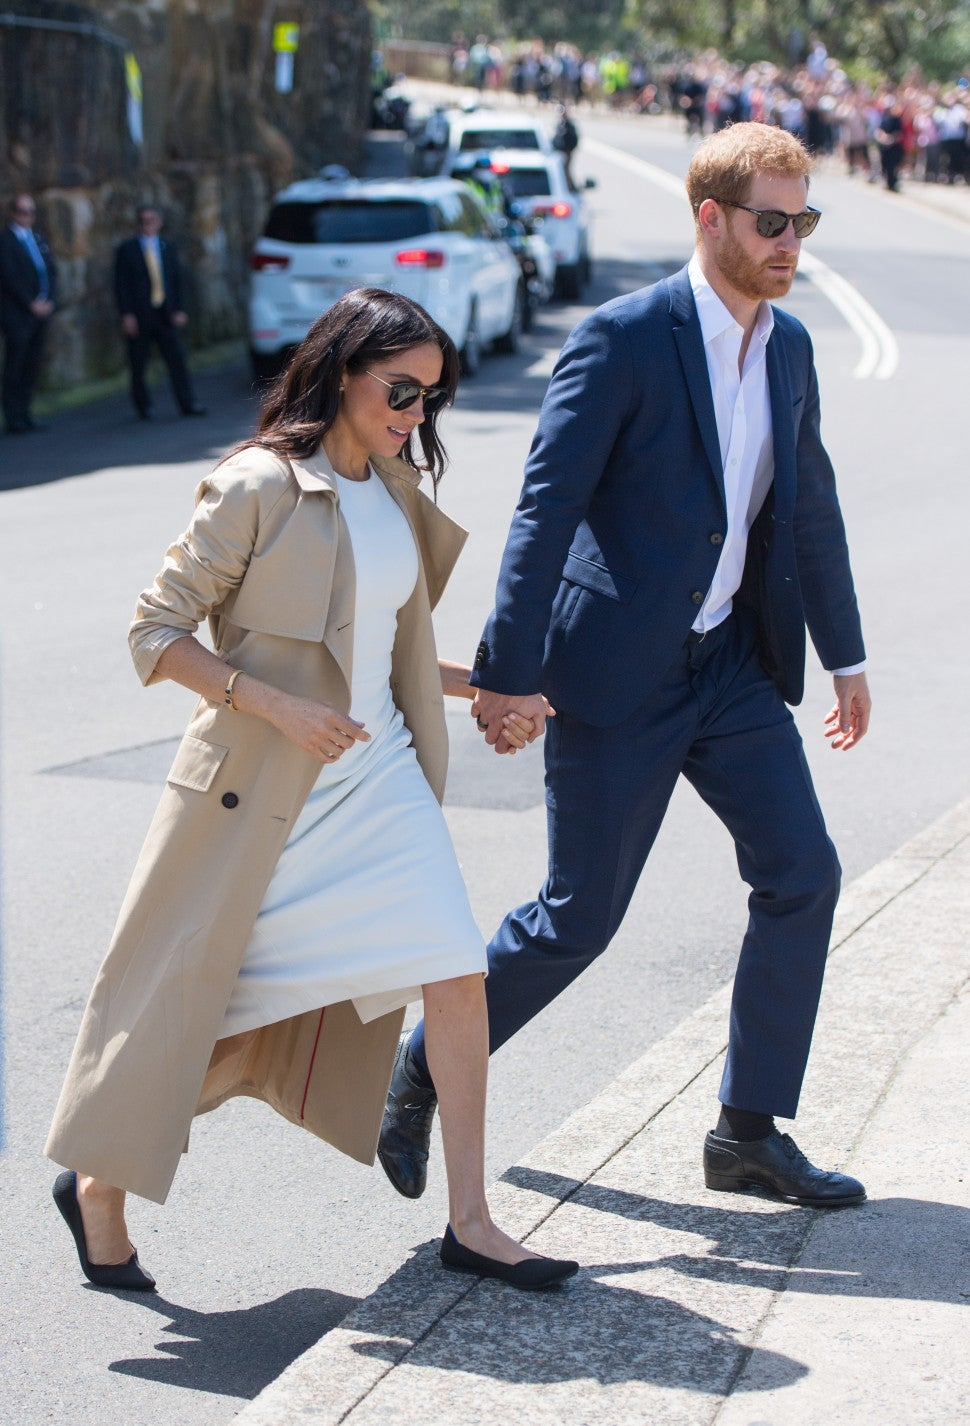 Meghan Markle in flats with Prince Harry